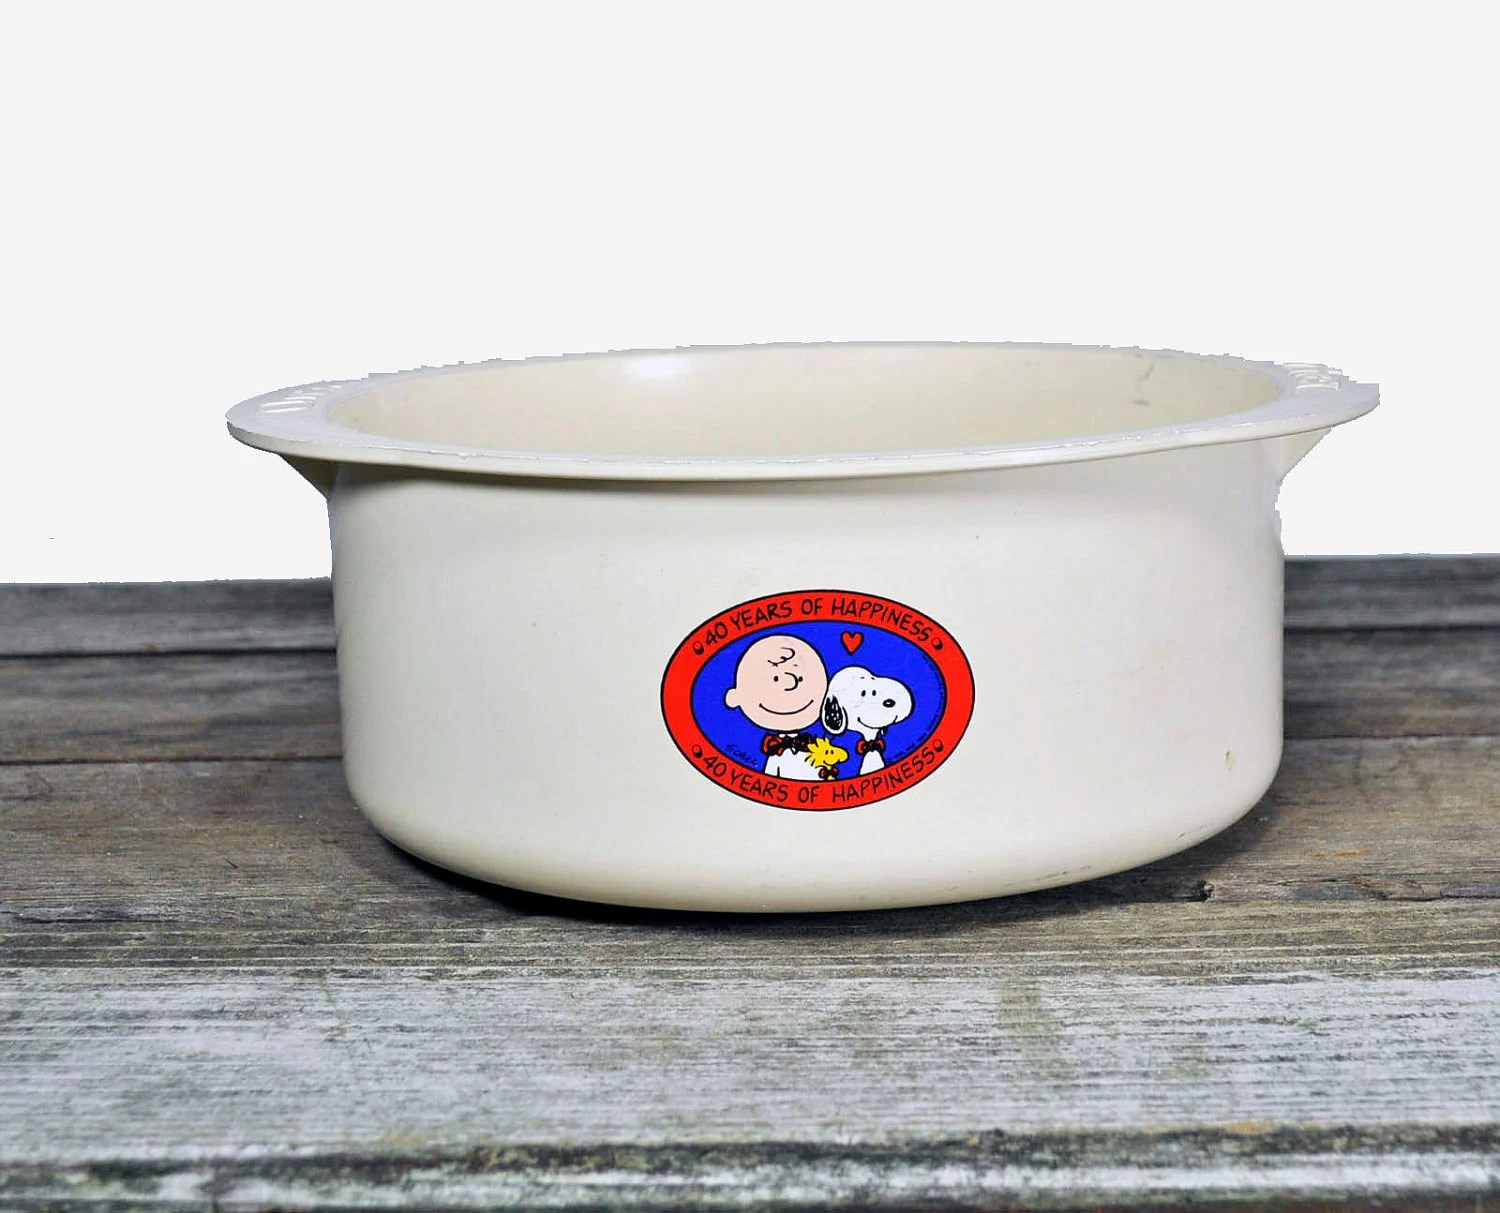 Plastic Chex Bowl 40th Anniversary with Charlie Brown and Snoopy.